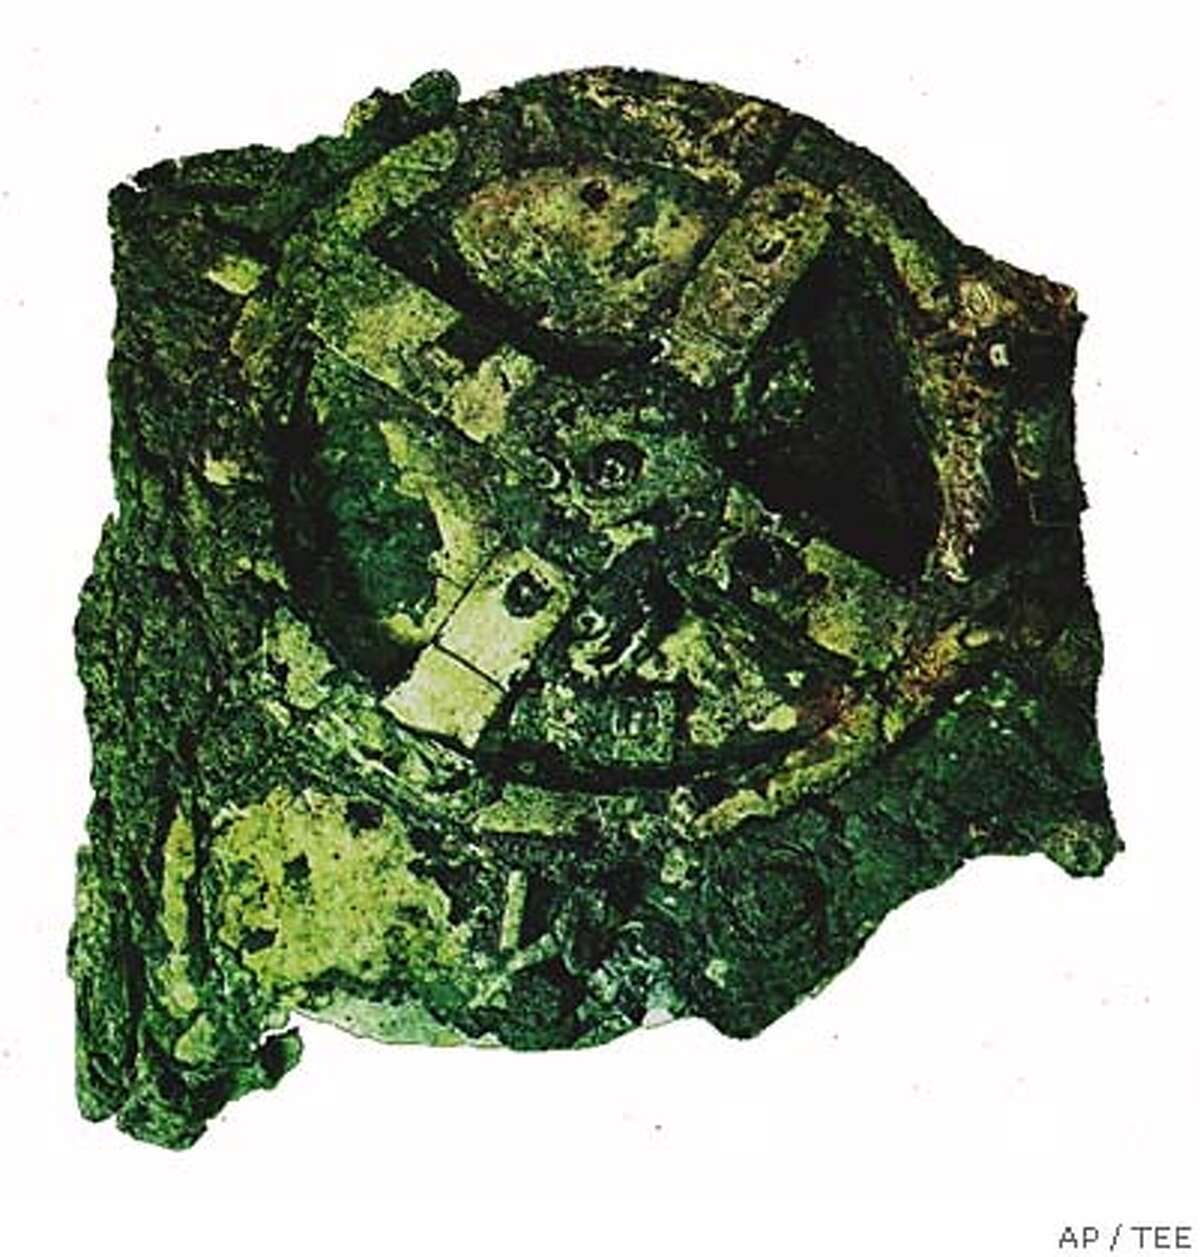 An undated handout picture of the mysterious Antikythira Mechanism, one of the study items at the second International Conference of Ancient Greek Technology due to take place in Athens, Greece, from October 17-20, 2005. The 2,000-year-old system of cogs and wheels, found in a badly corroded state in an ancient shipwreck off southern Greece, was probably used for astronomical calculations. (AP Photo/TEE) ** : ** HANDOUT: :